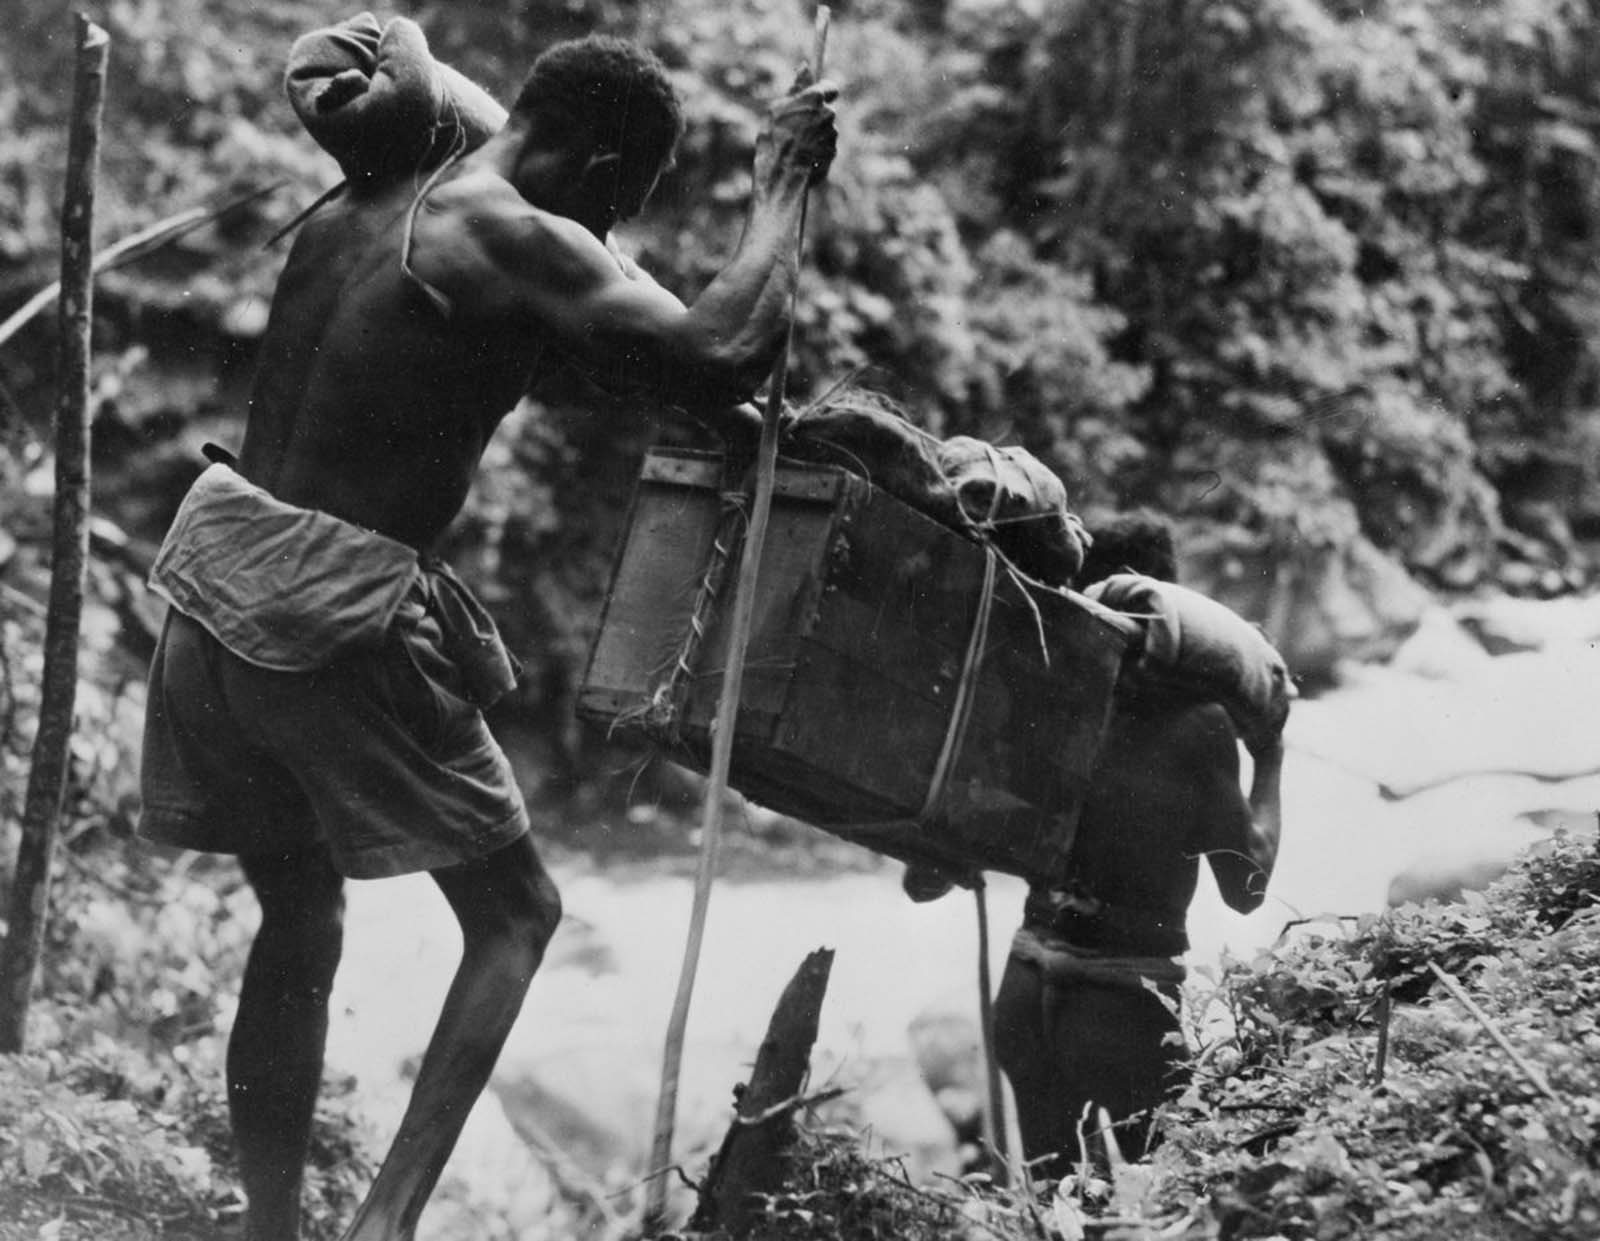 Carriers transport supplies through trackless jungle.